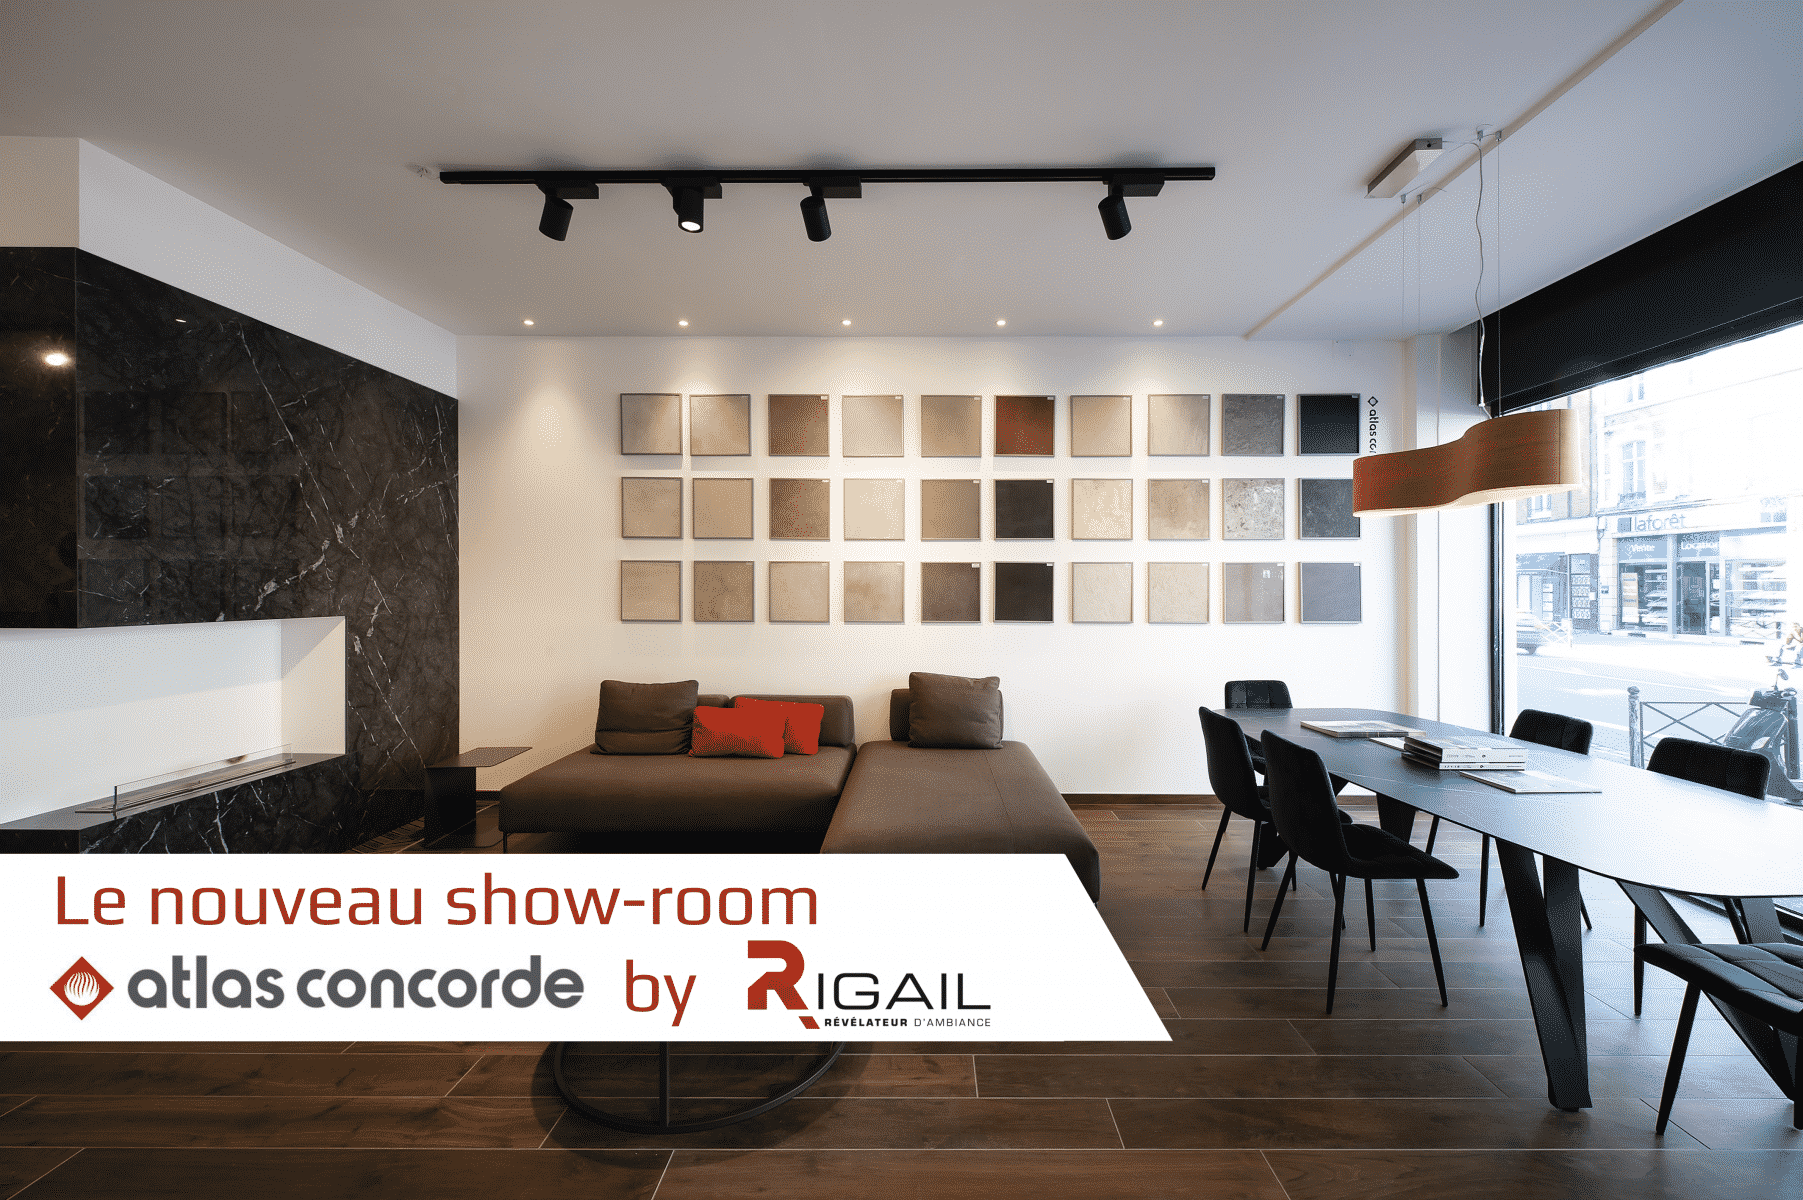 show-room professionnel by Rigail